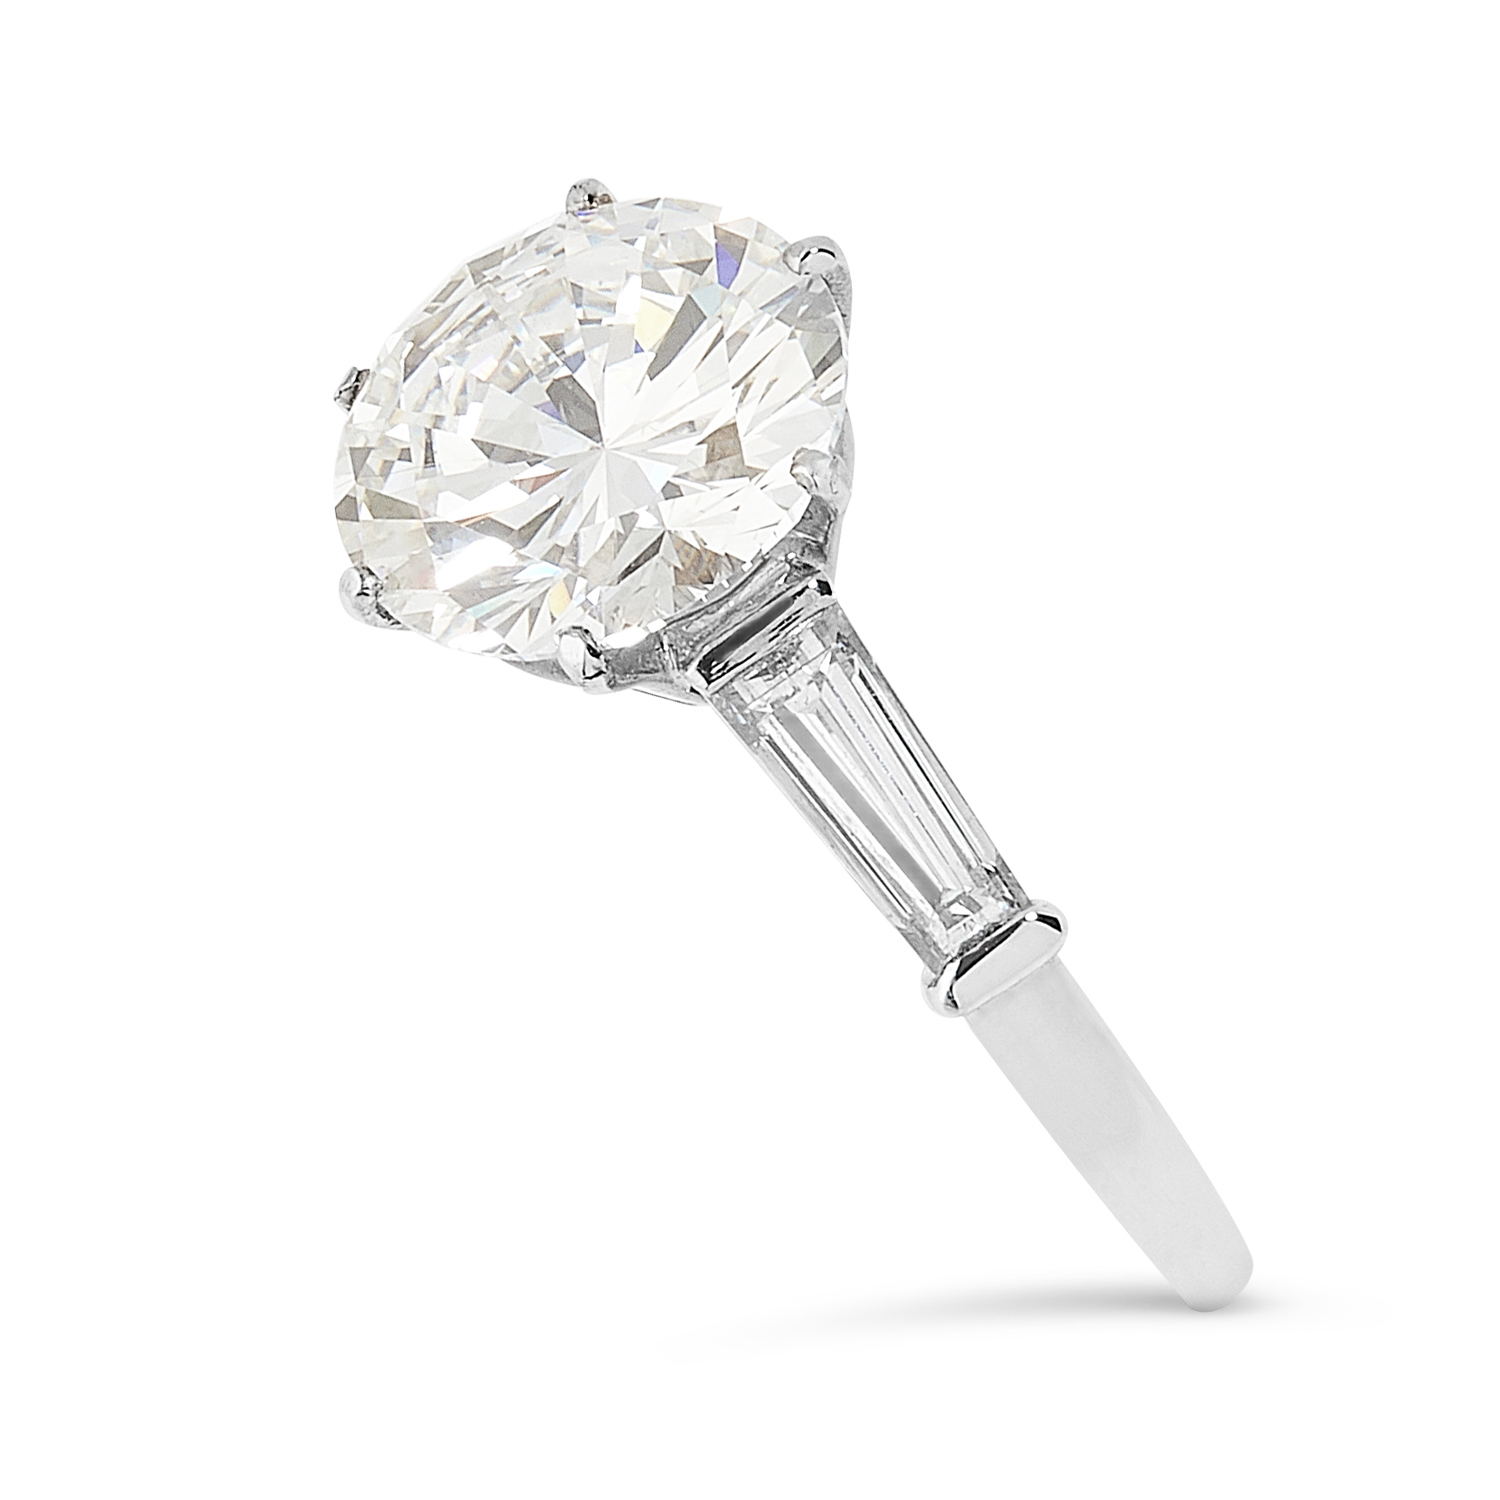 A 3.03 CARAT DIAMOND RING, VAN CLEEF AND ARPELS in platinum, set with a round cut diamond of 3.03 - Image 3 of 3